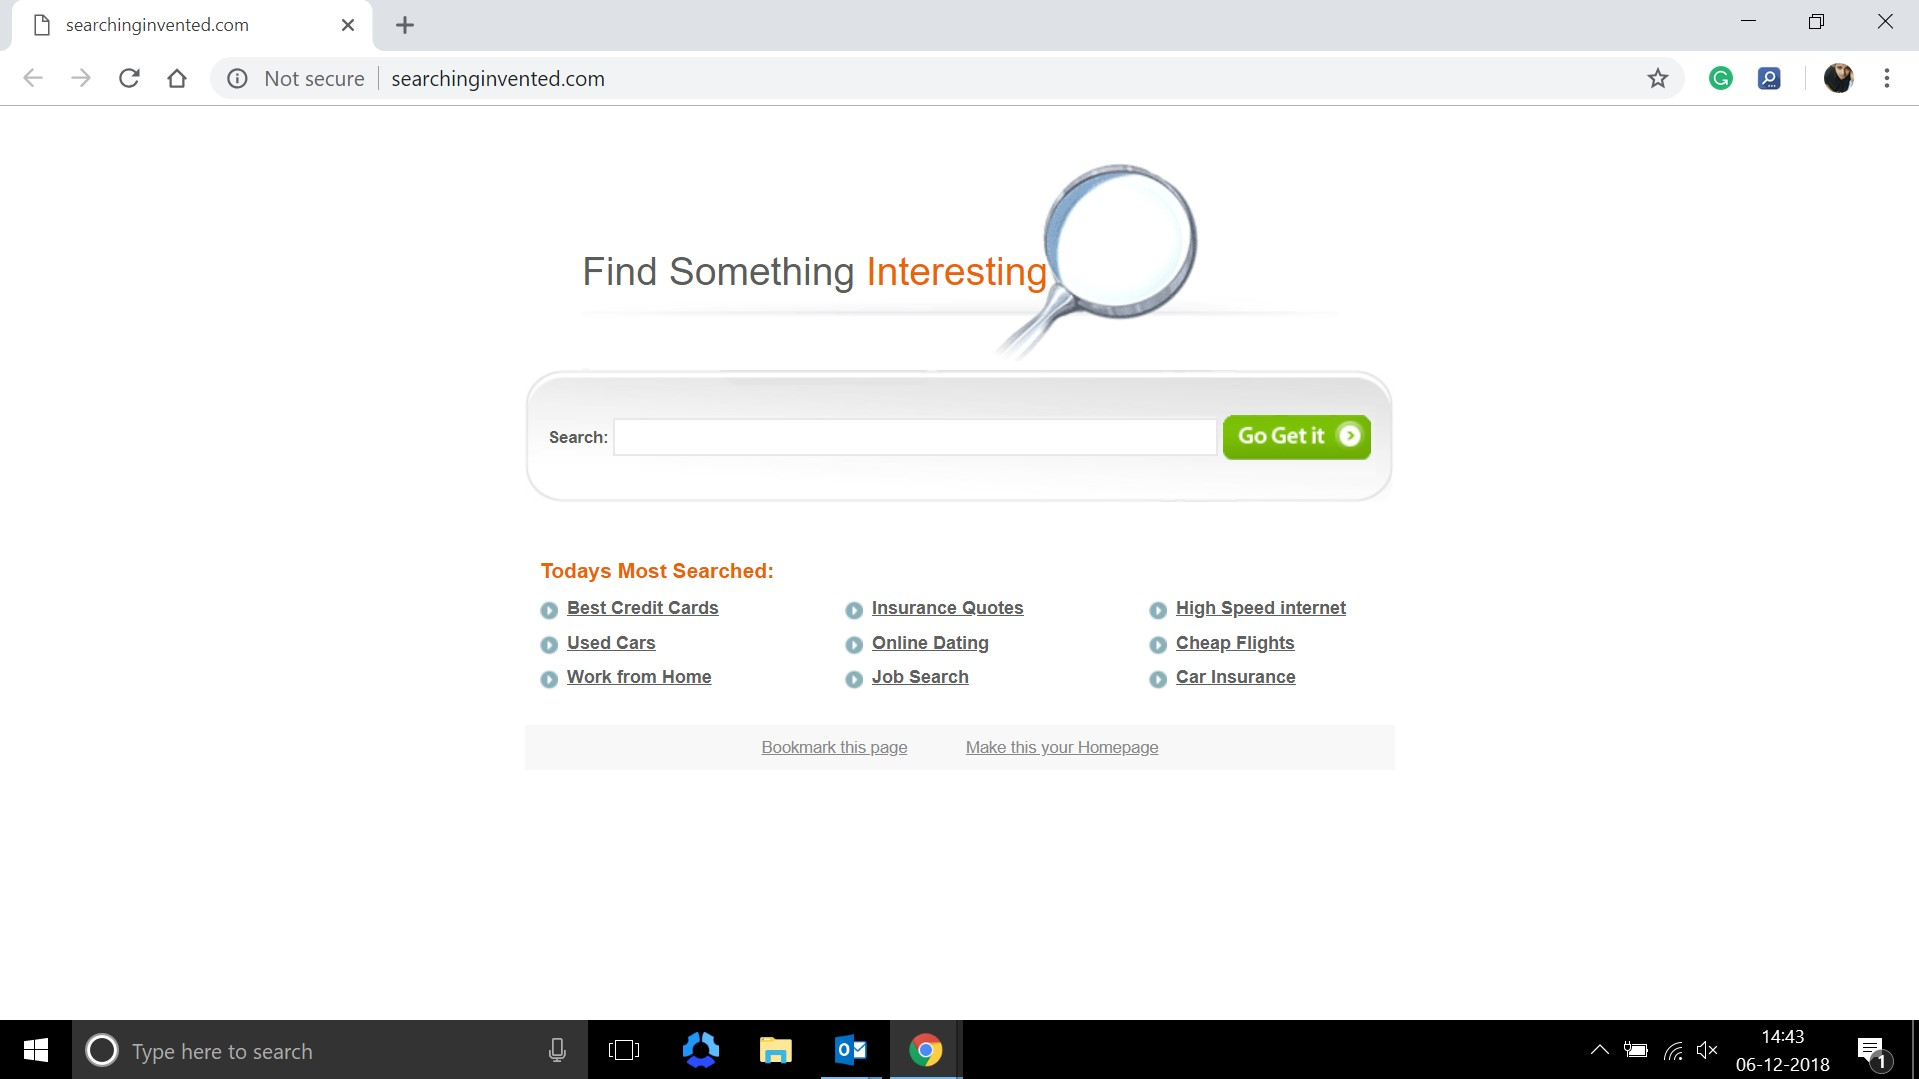 How to remove Searchinginvented.com Hijacker